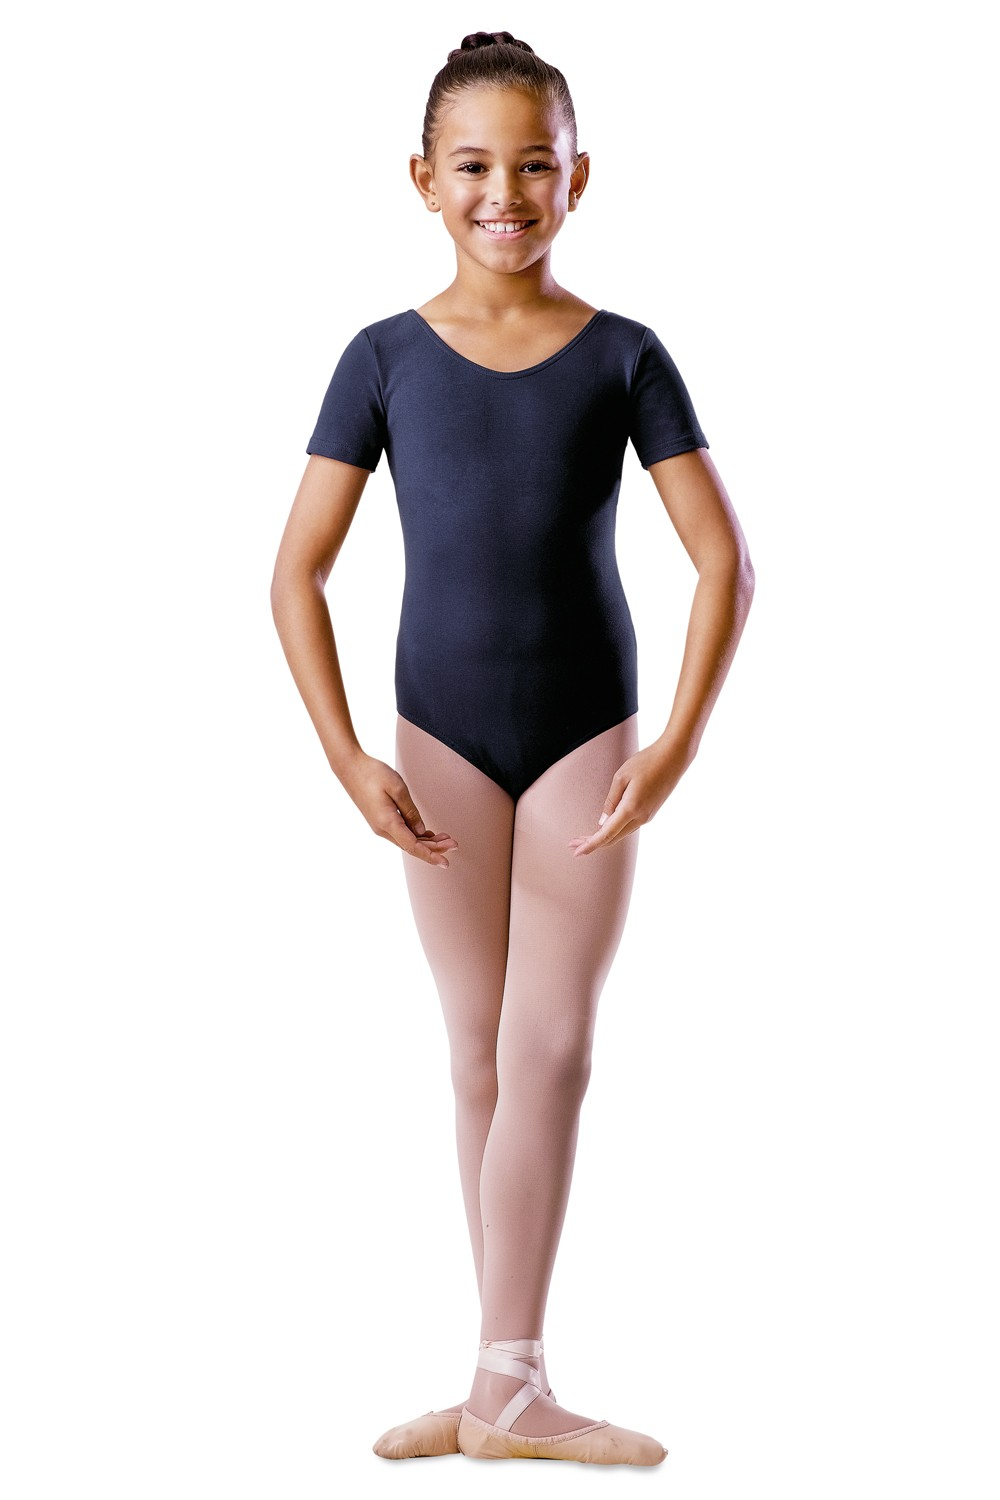 Justaucorps Manches Courtes Décolleté Arrondi Children's Dance Uniforms